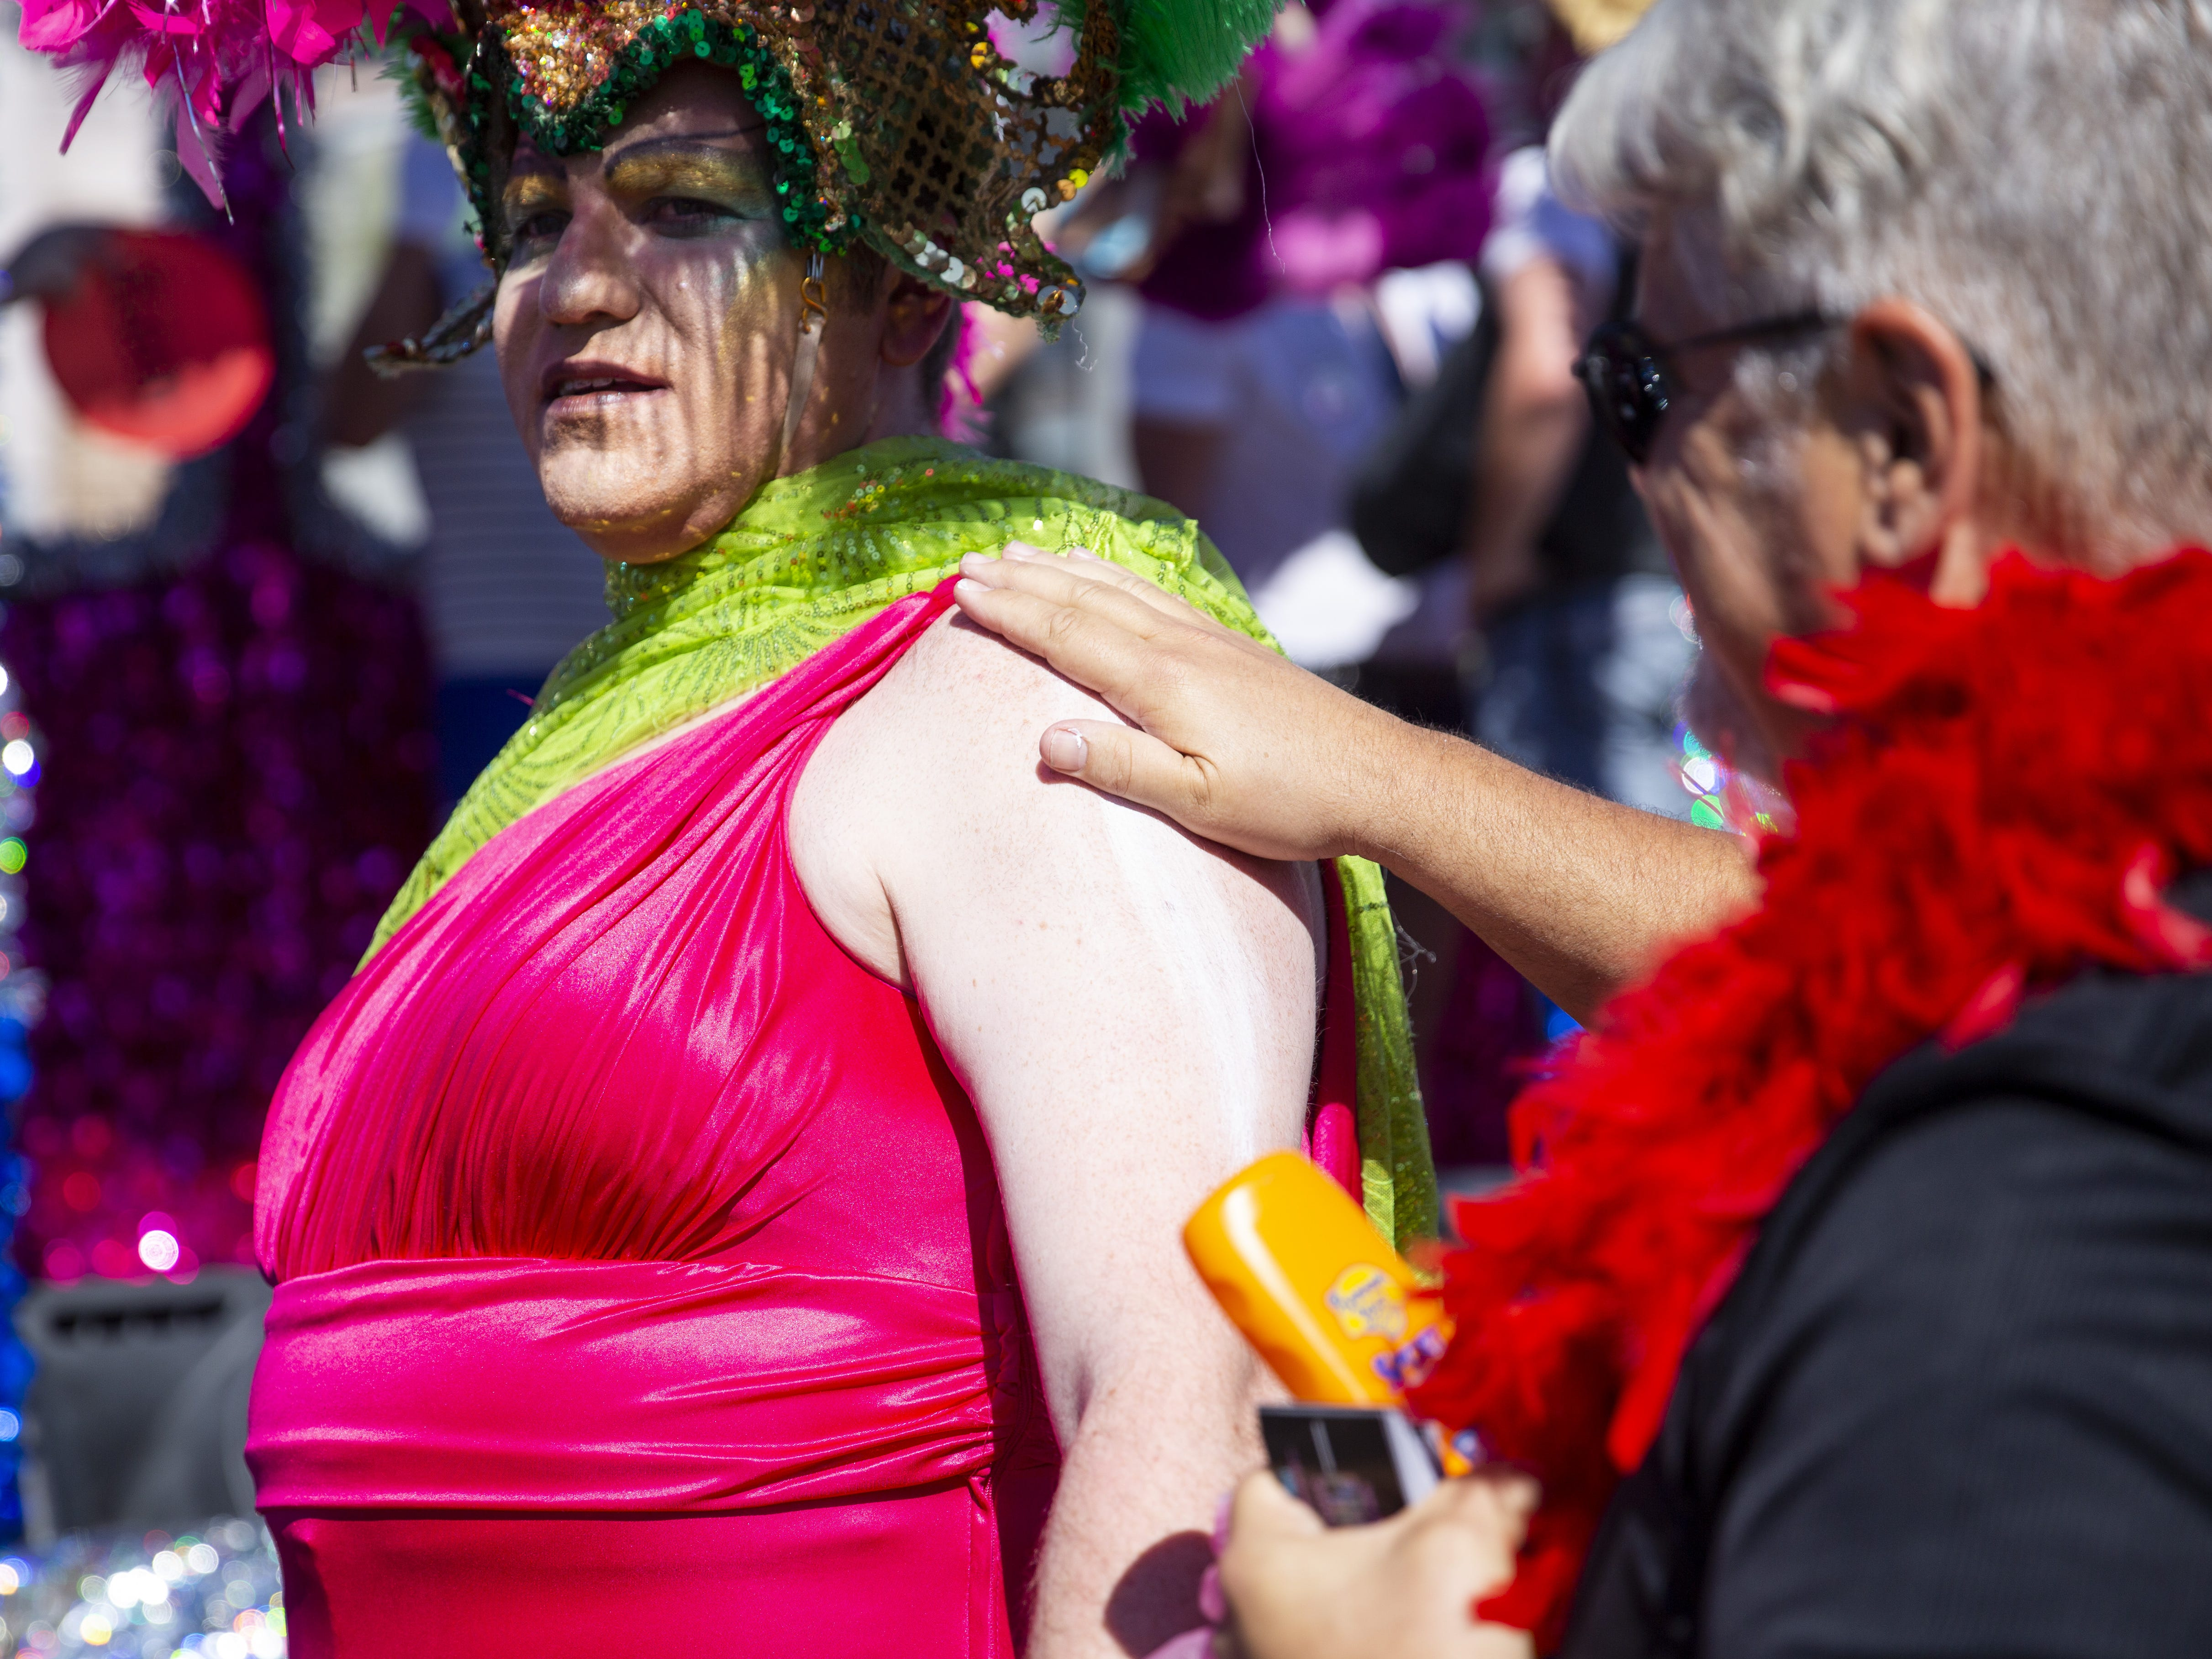 Scott Loos rubs sunscreen on one of the divas who marched at the front of the Phoenix Pride Parade on April 7, 2019.